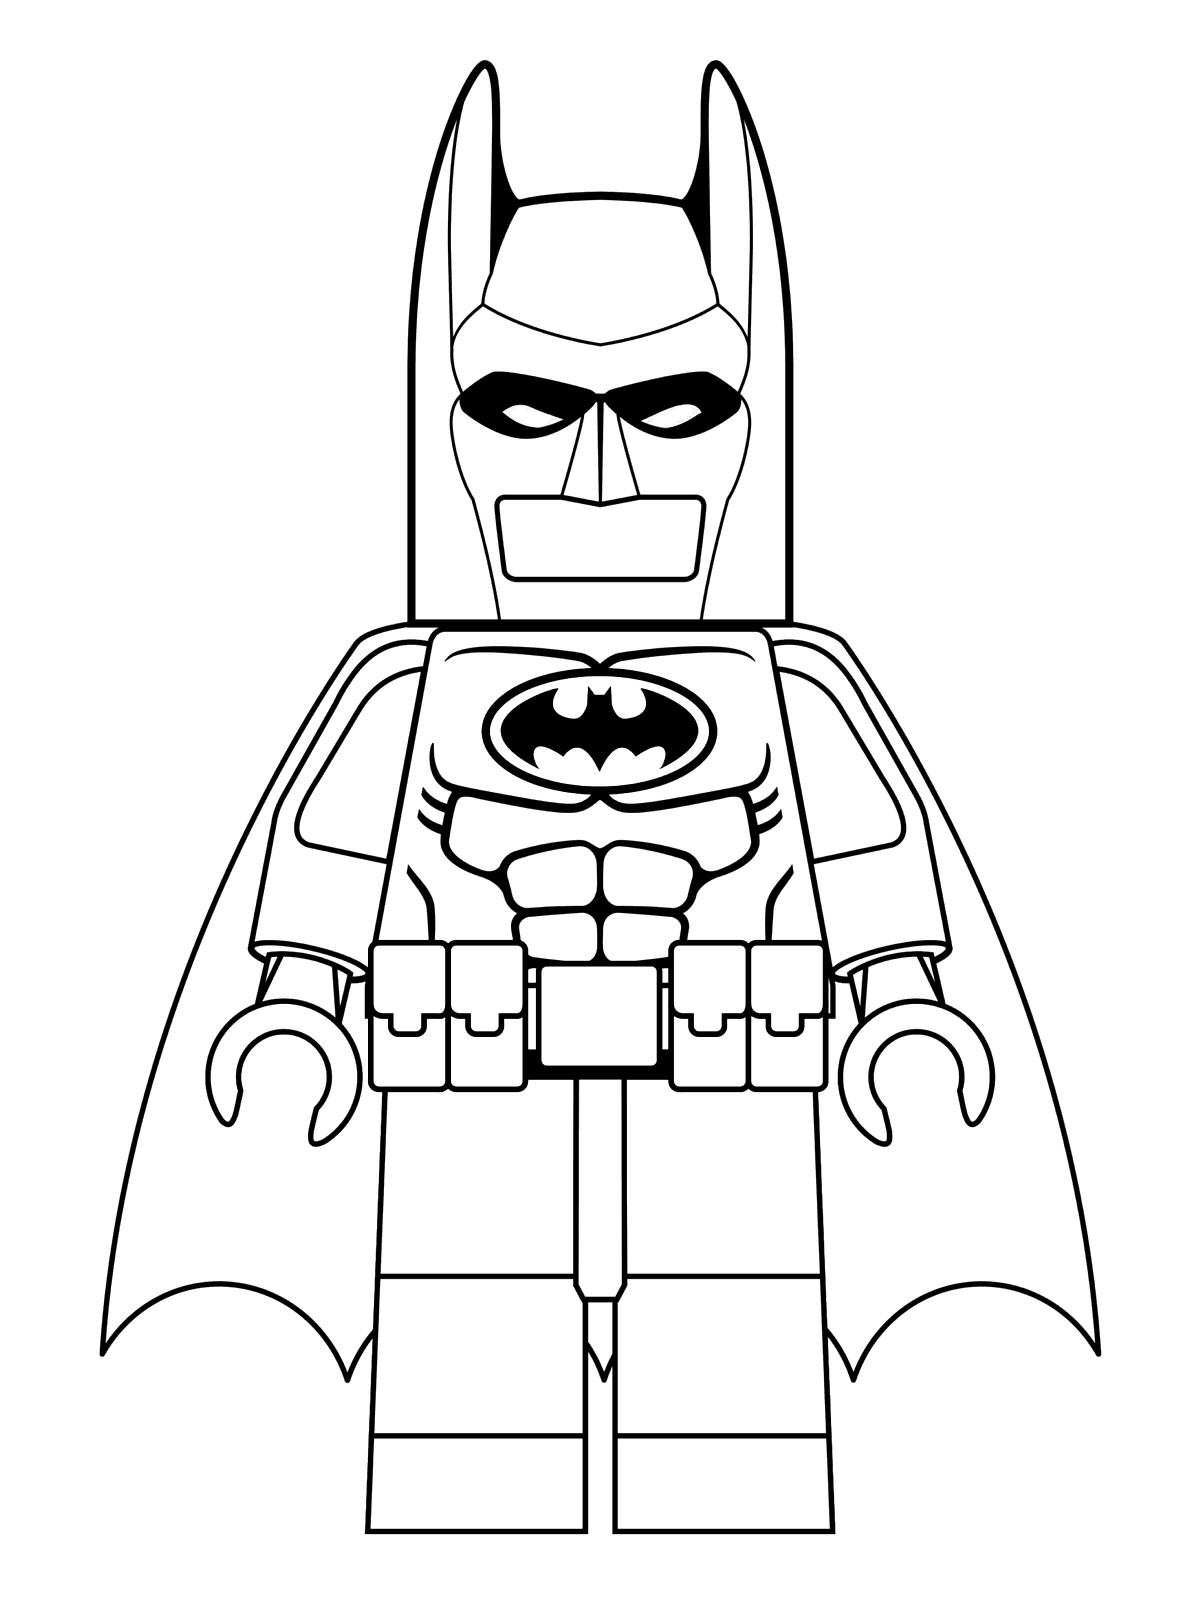 lego batman coloring pages Kids n fun.| 16 coloring pages of Lego Batman Movie lego batman coloring pages